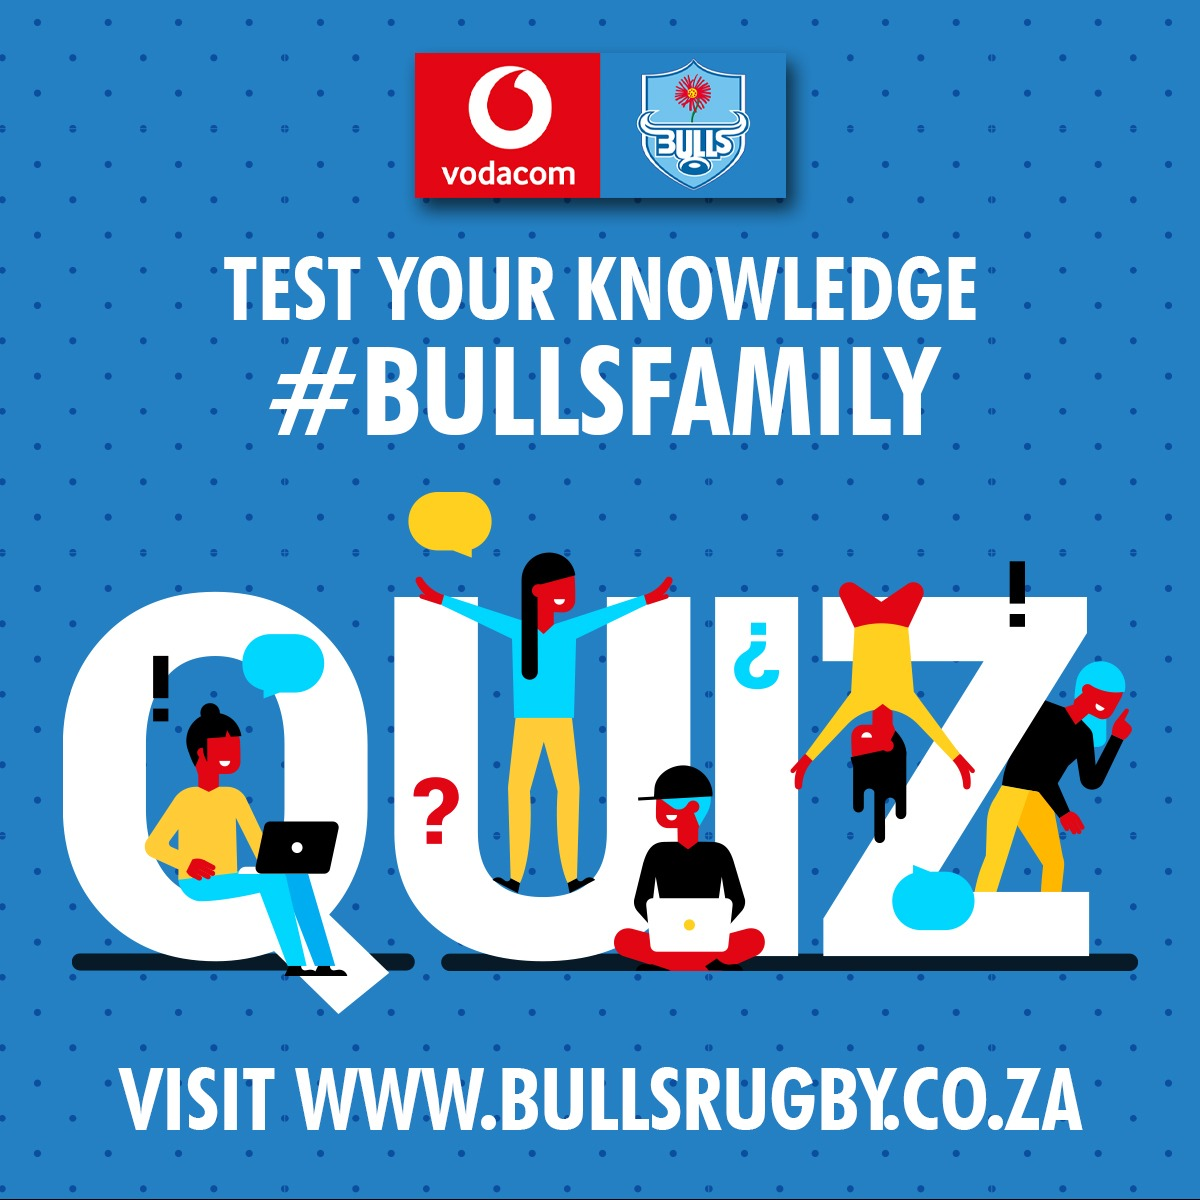 #BullsFamily Its Sunday which means its time for our quizzes! Test your Vodacom Bulls knowledge and let us know how you did in the comments! 🔥 #SundayFunday Quizzes: bullsrugby.co.za/quiz/